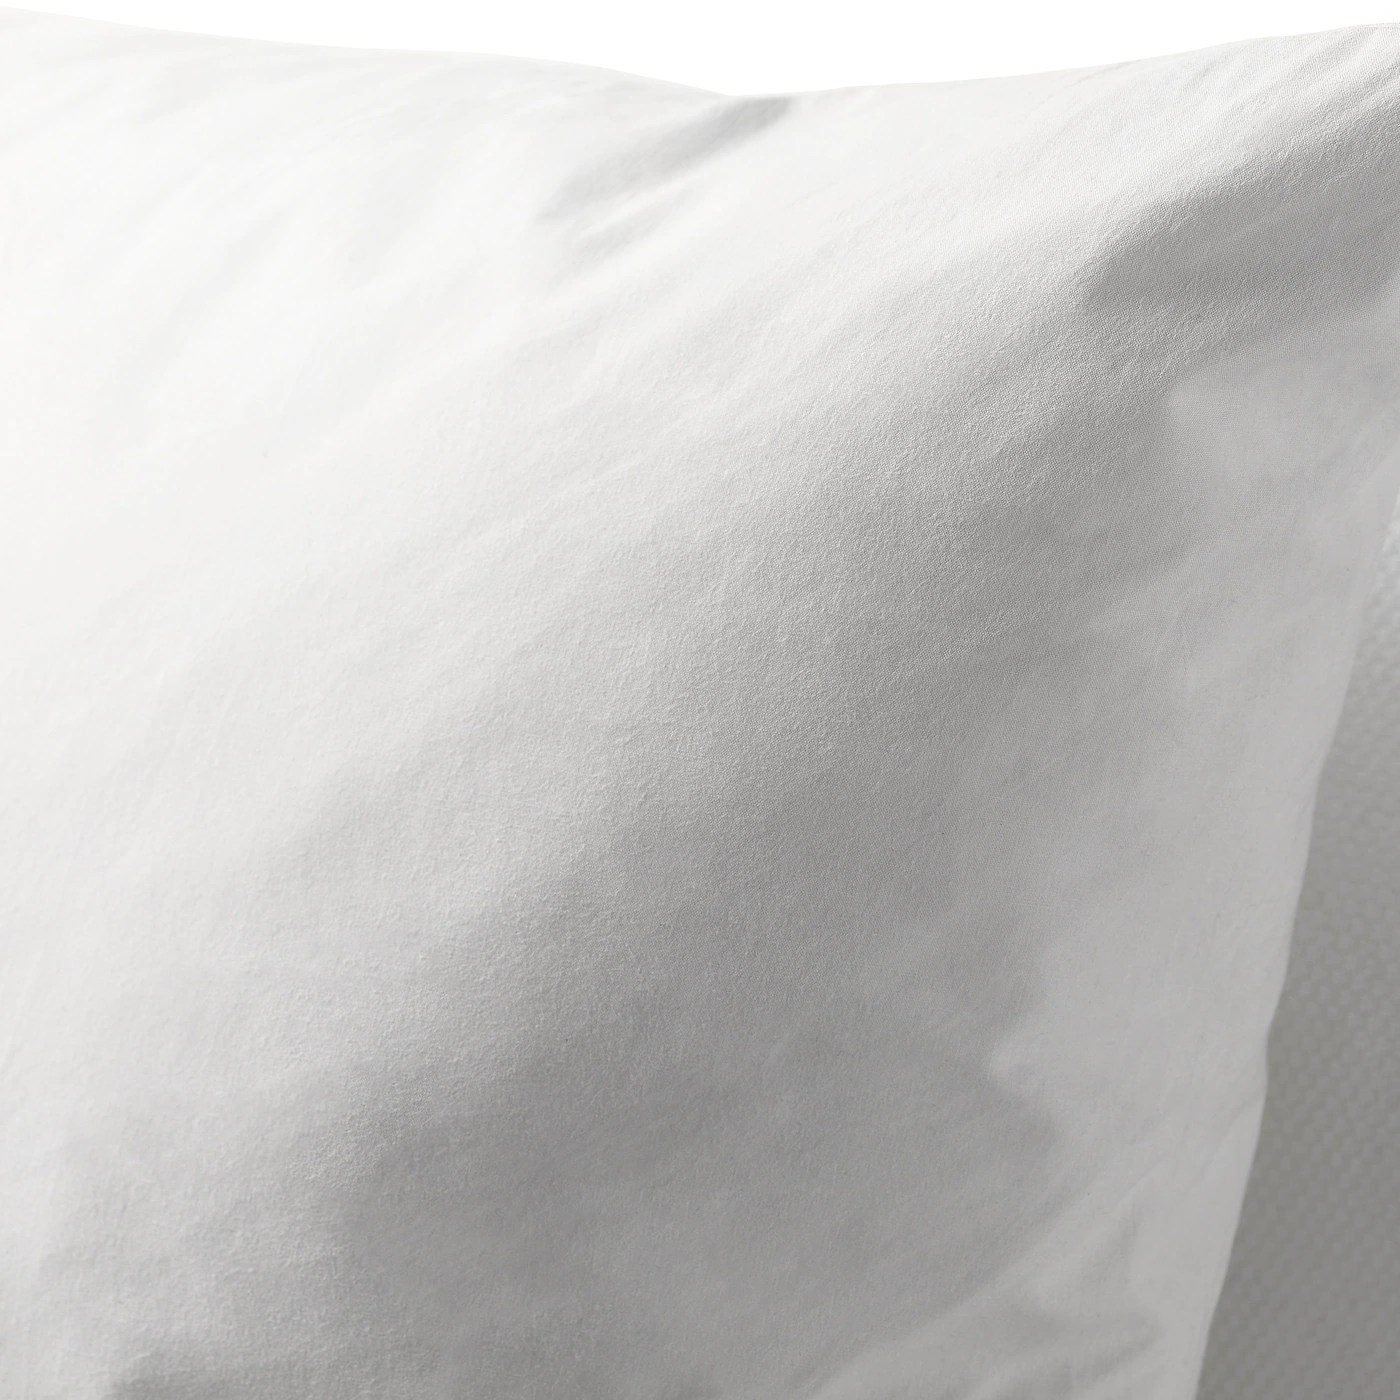 Ikea Gosa Pinje Ikea Feather Pillow Inserts Online -